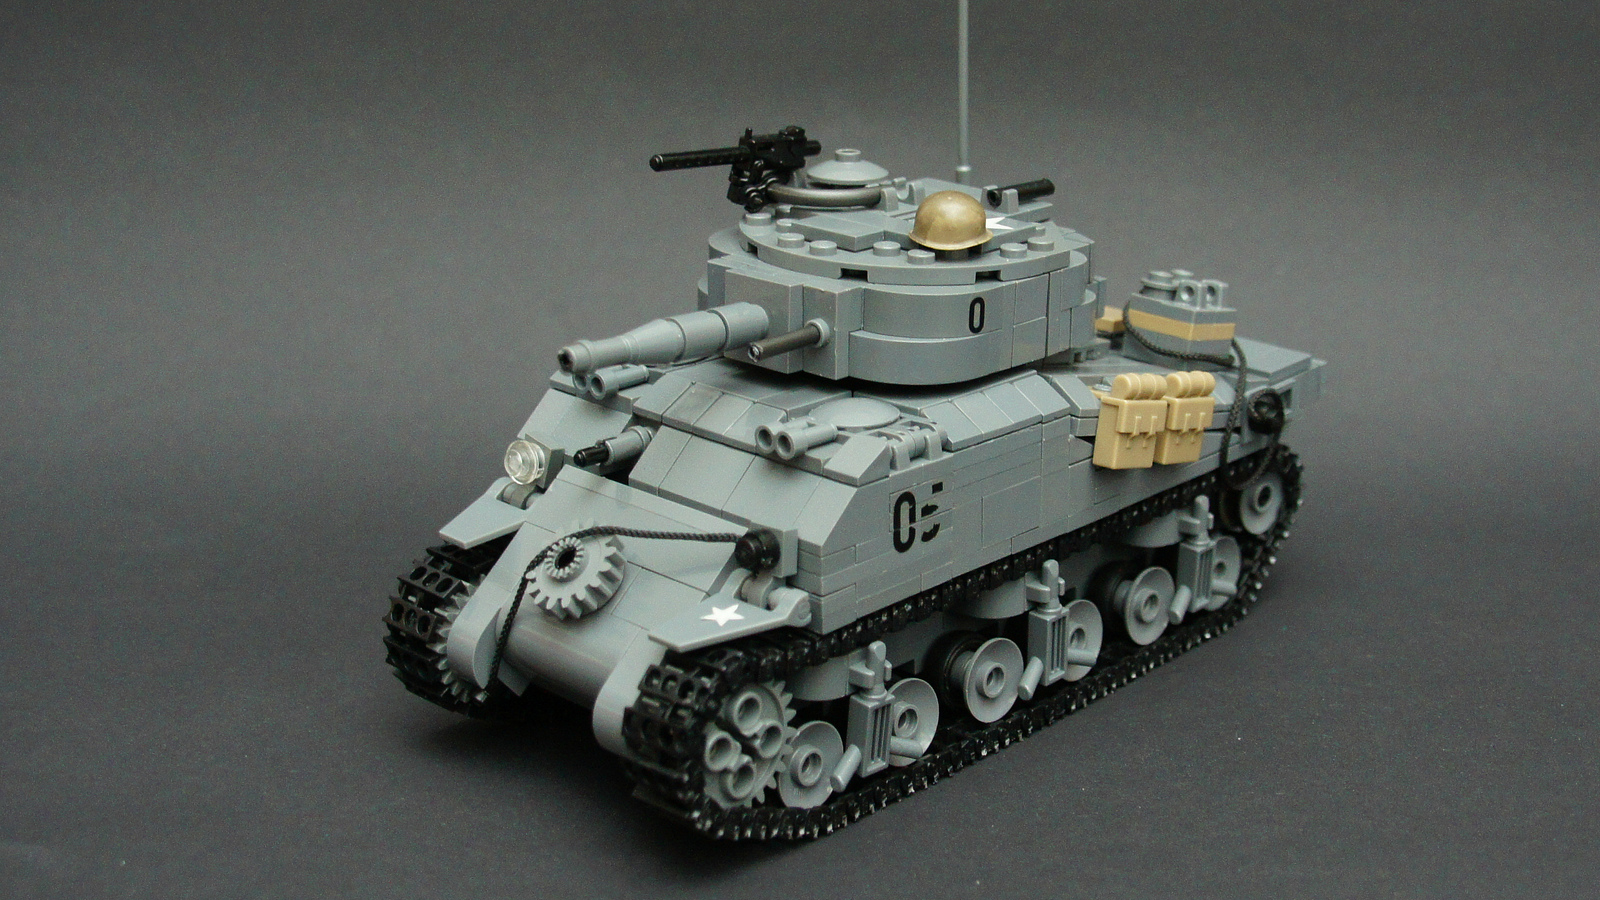 Lego genius rebuilds WWII vehicles